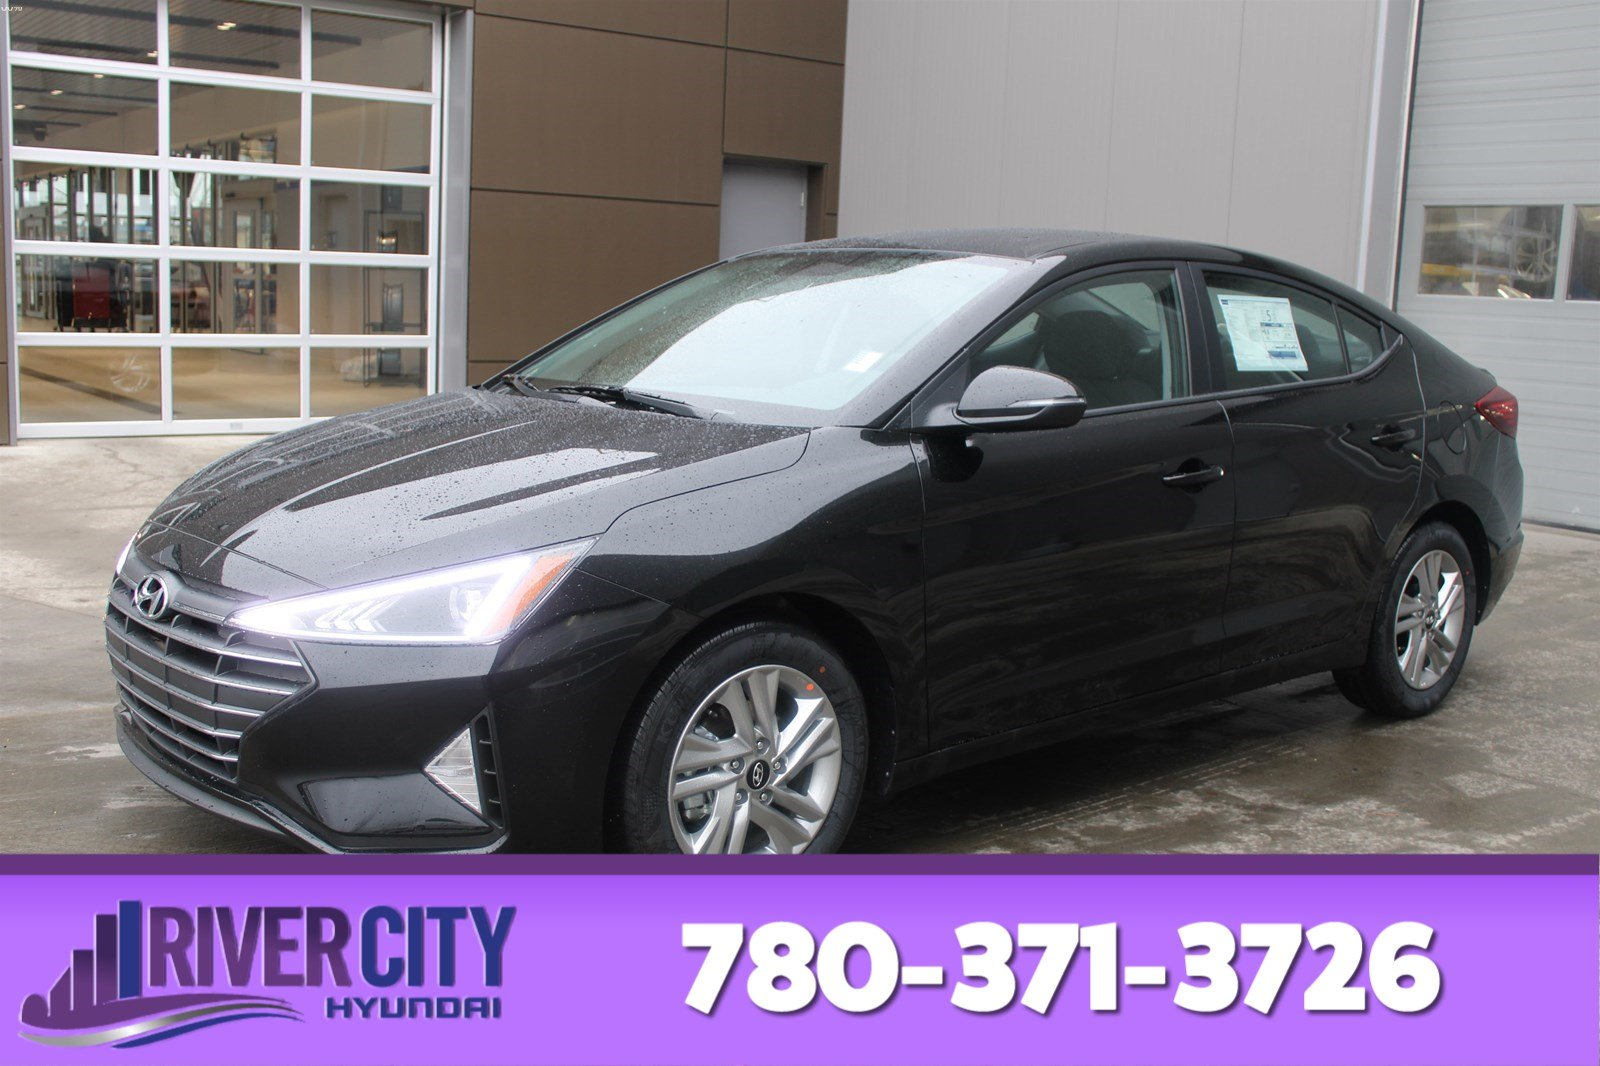 New 2020 Hyundai Elantra PREFERRED AUTO HEATED SEATS,REARVIEW CAMERA,BLUETOOTH,HEATED STEERING WHEEL